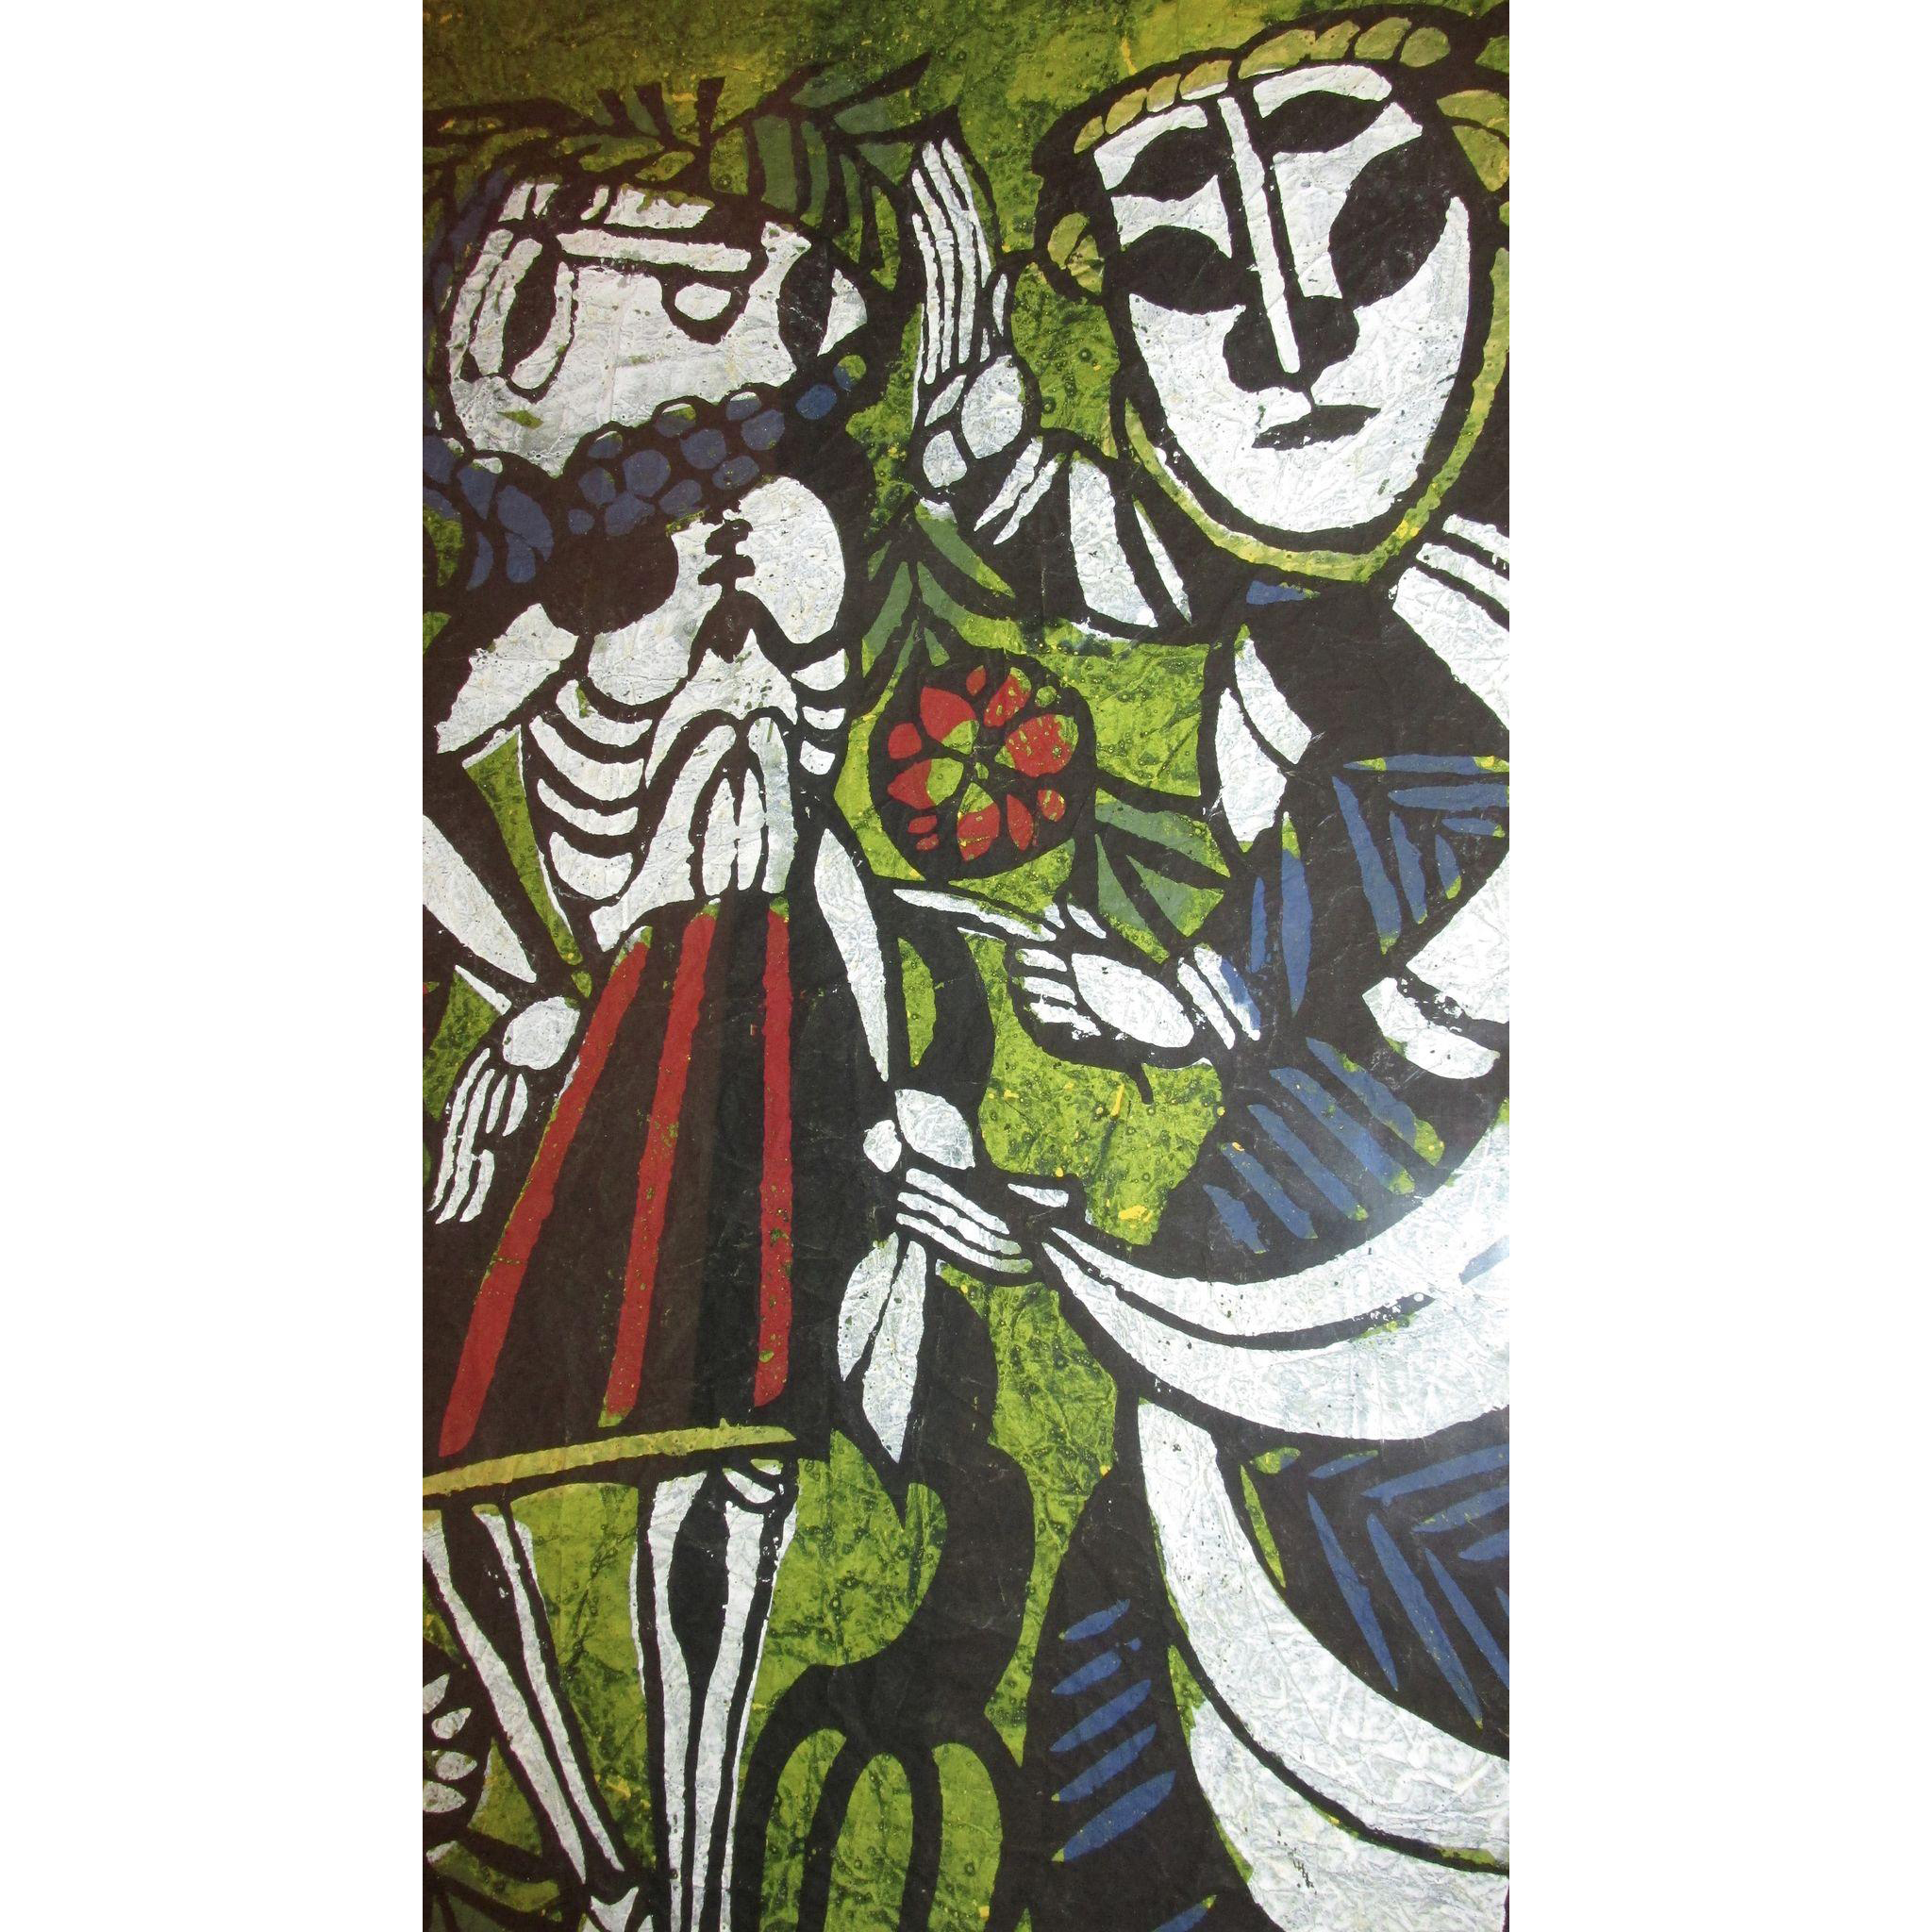 Sadao Watanabe - Jacob Wrestling the Angel - Limited Edition Japanese Christian Gospel Print Artist Signed Numbered 50/50 & Dated 1964